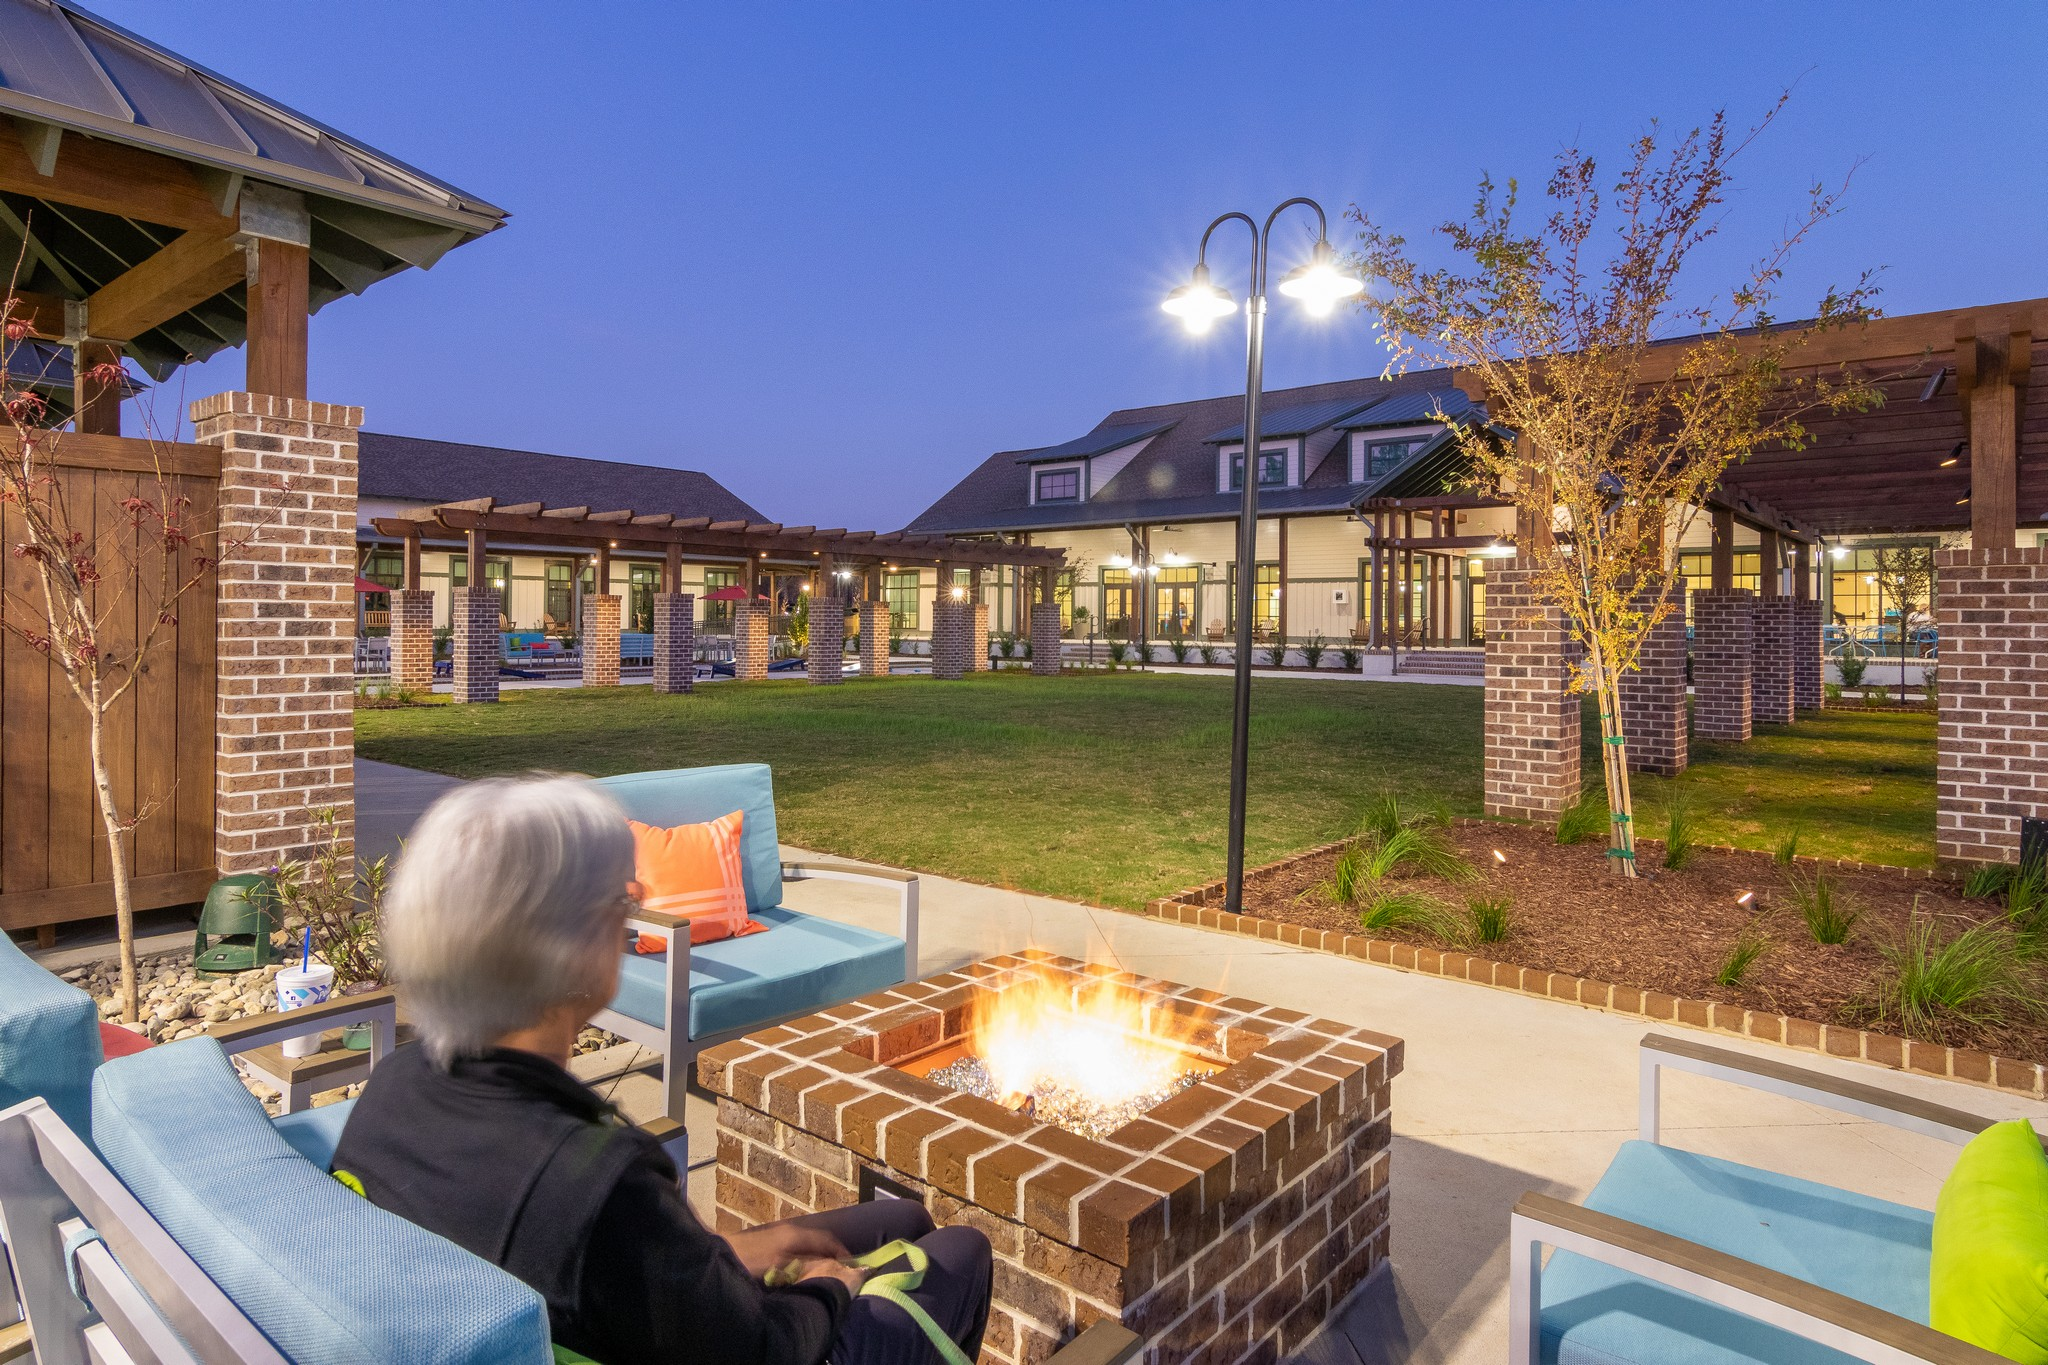 Carolina Pines RV Resort Park and Amenity Center